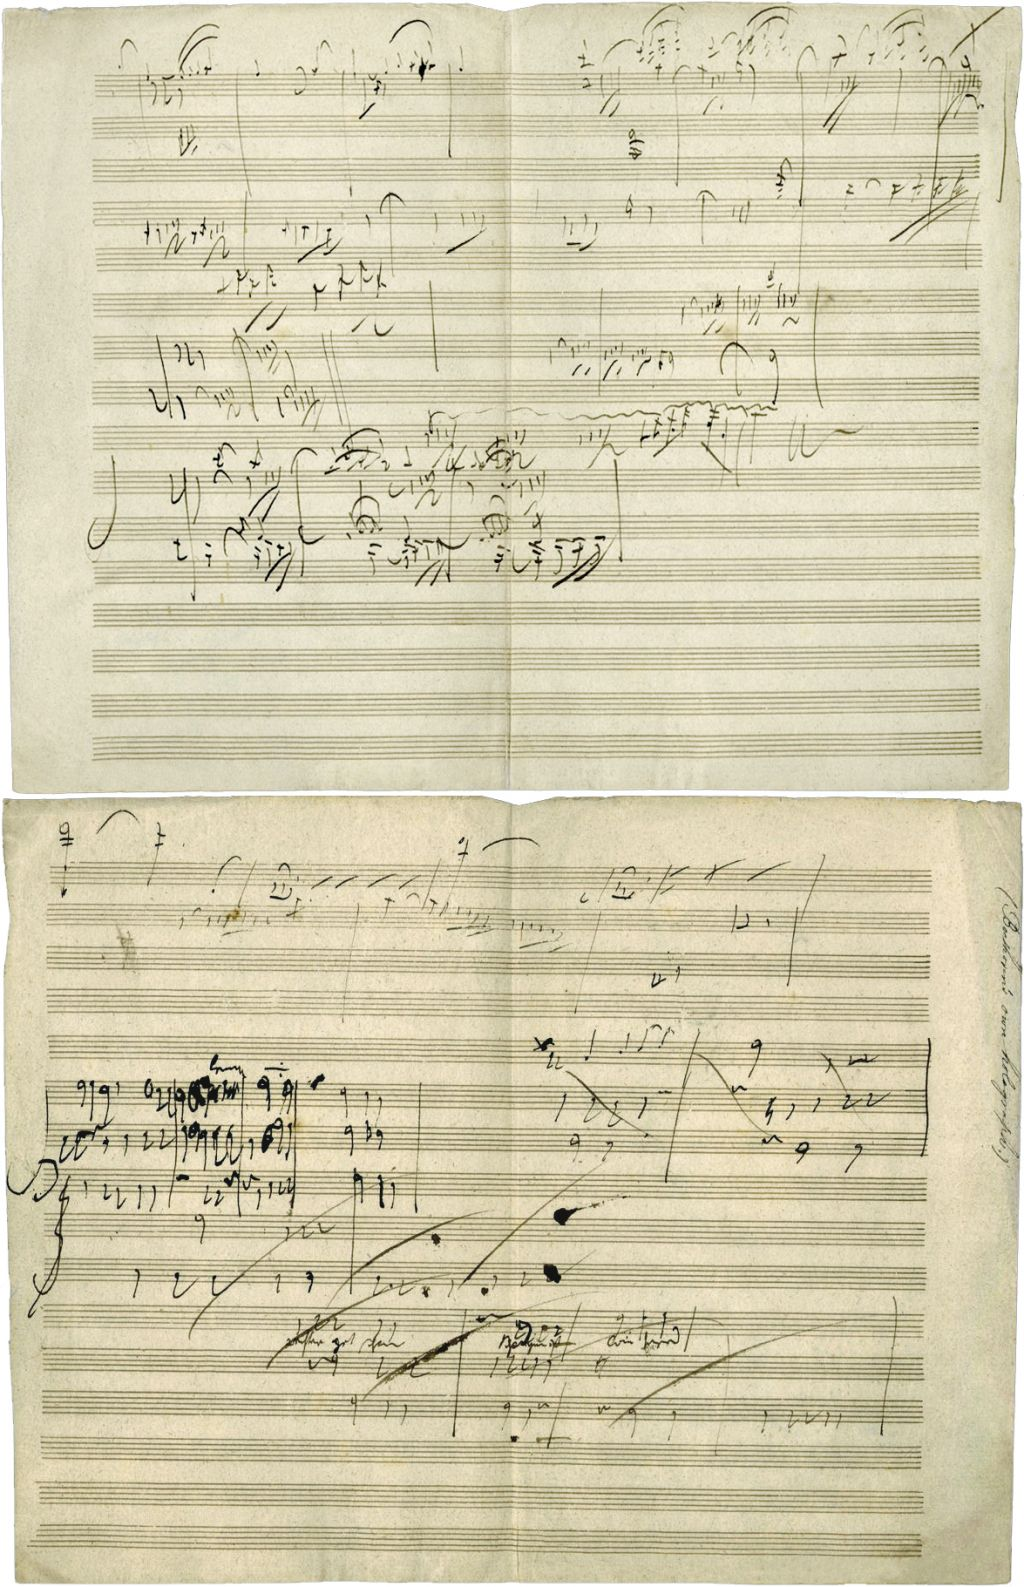 analysis of beethovens sonata Free essay: analysis on beethoven's piano sonata no 3, op 2, allegro con brio composers since the early classical era have used sonata form to express.